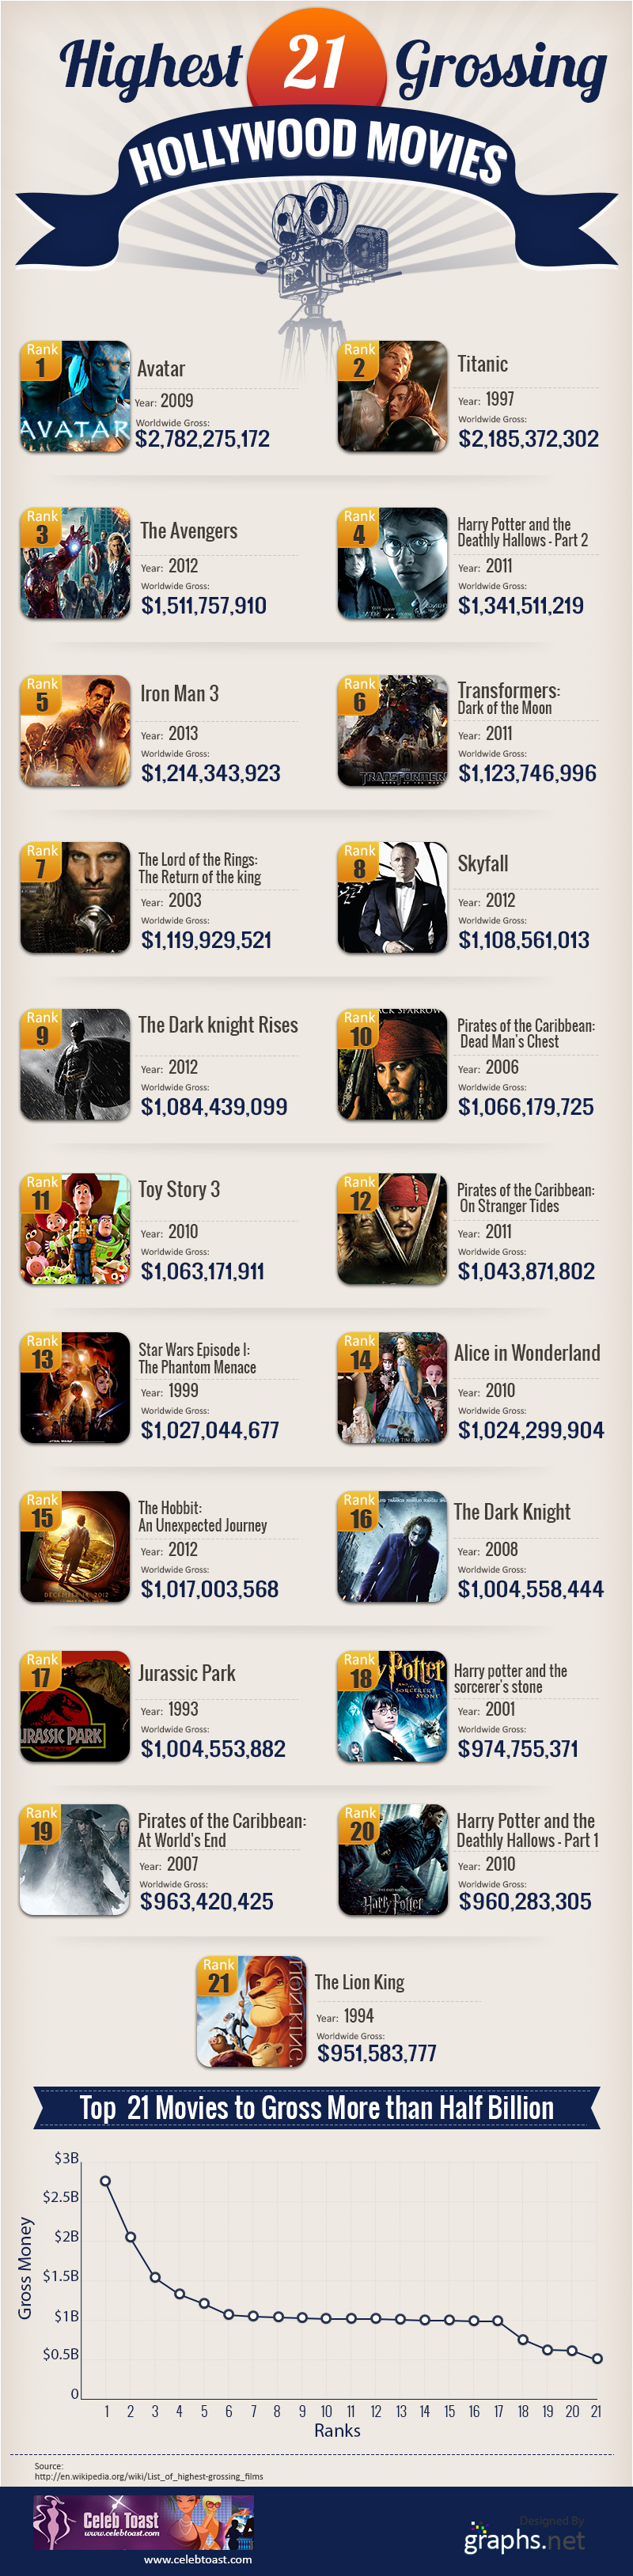 Worldwide-Top-19-Highest-Grossing-Hollywood-Movies (1)